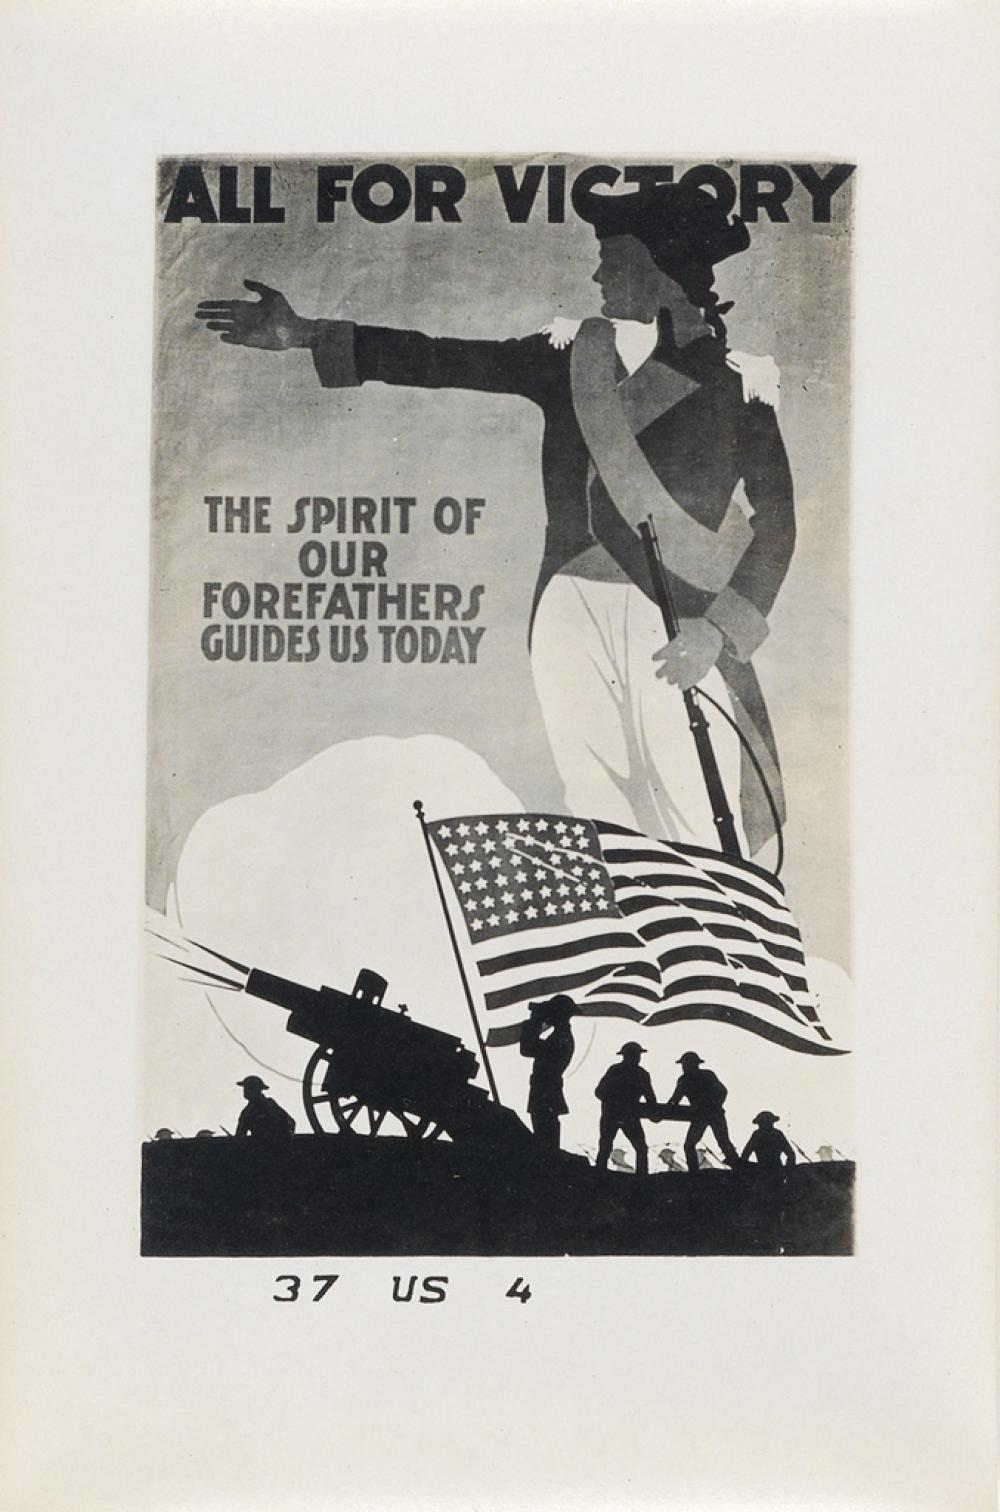 (WWI--POSTERS) A large and thorough archive with more than 2,450 photographs of World War I-era posters.